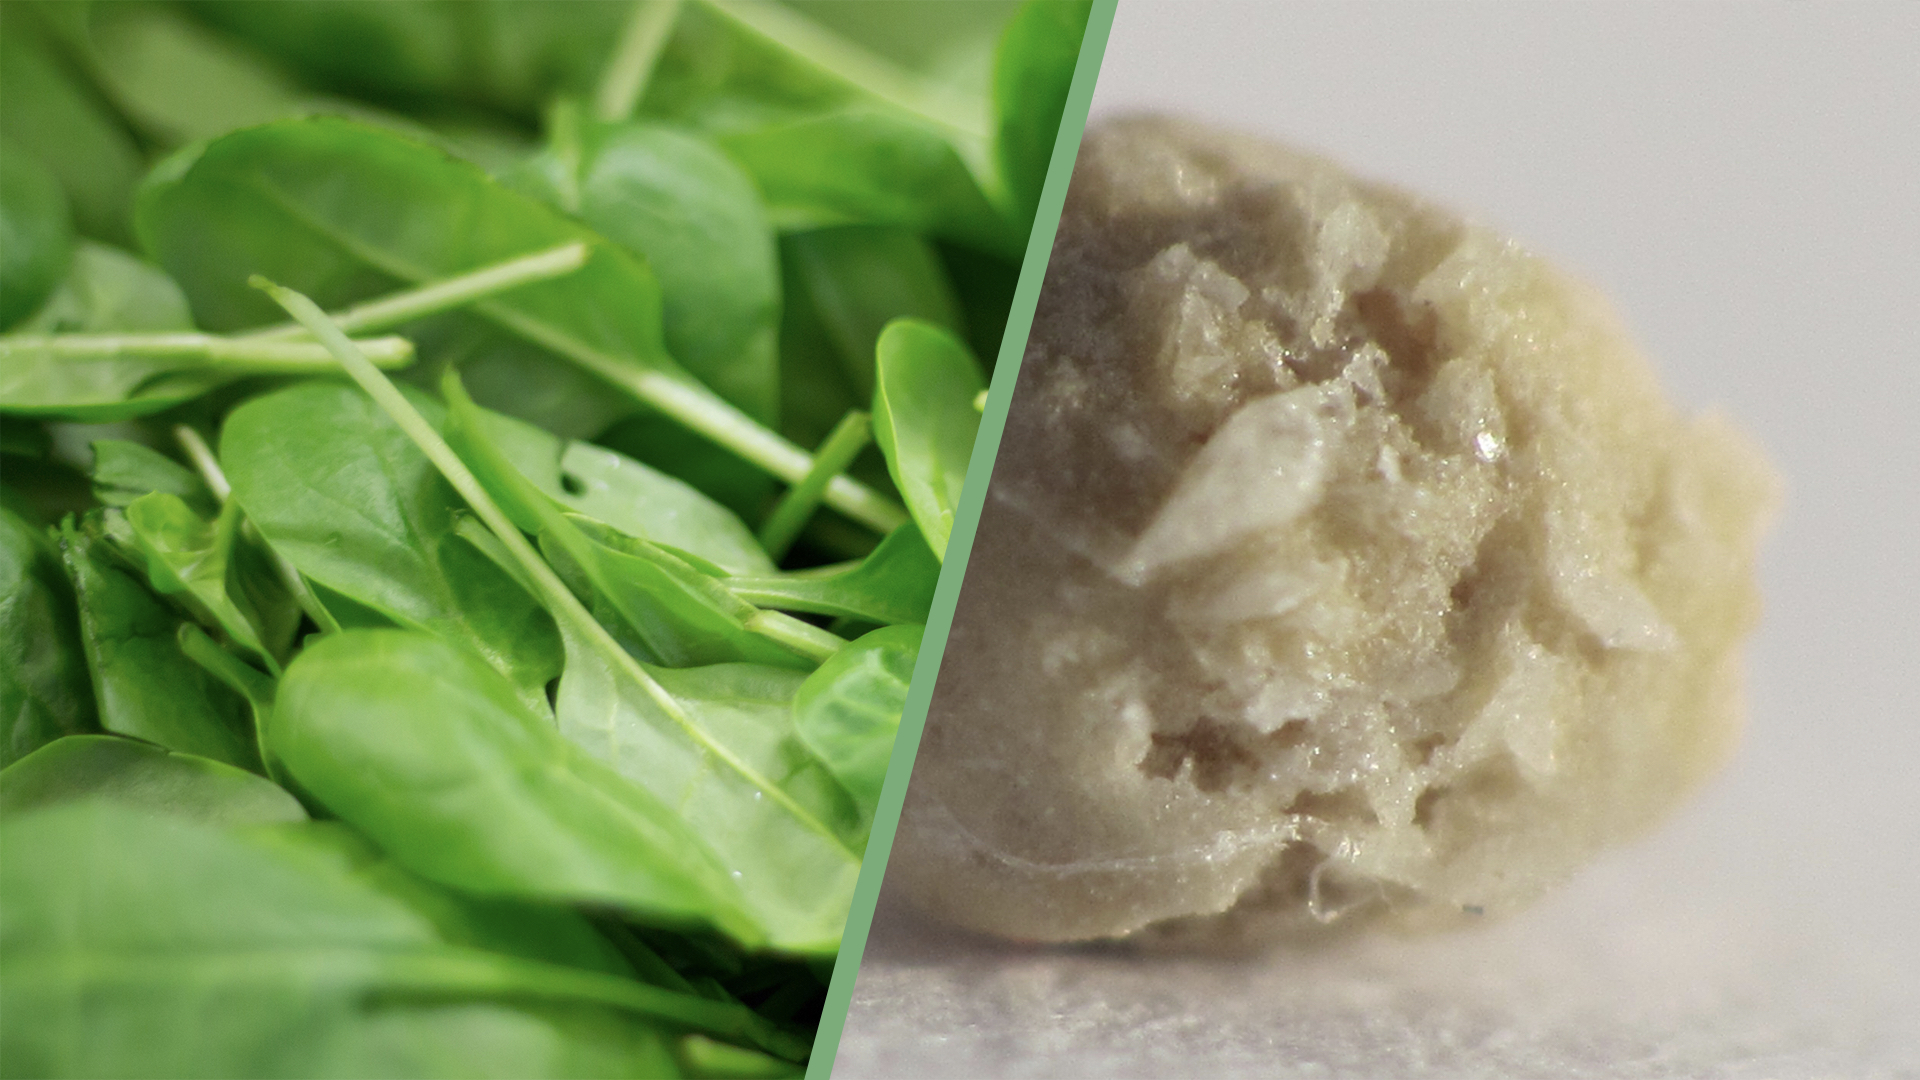 Oxalates in Spinach and Kidney Stones Should We Be Concerned?